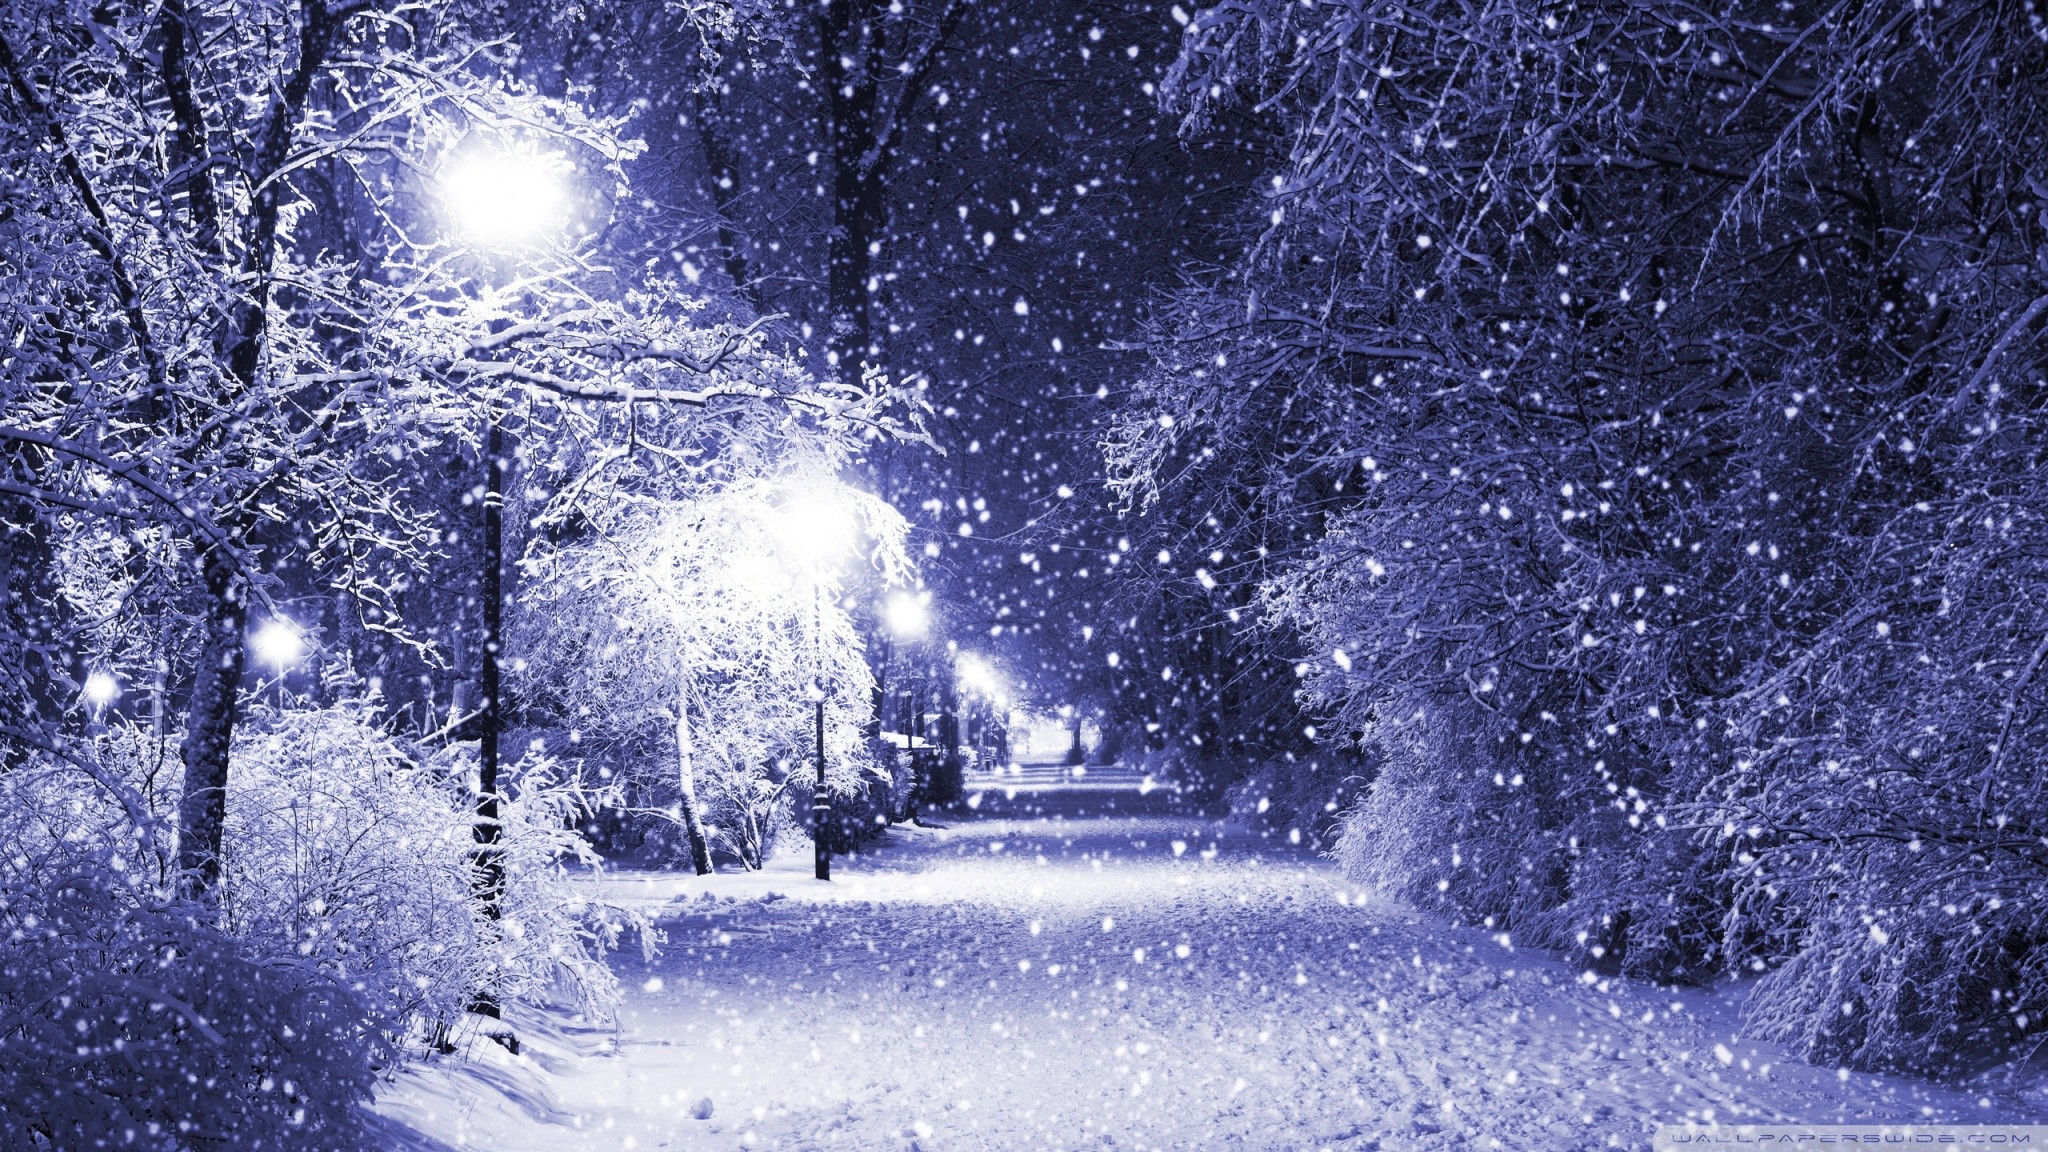 2048x1152 Winter Night HD desktop wallpaper Mobile Dual Monitor